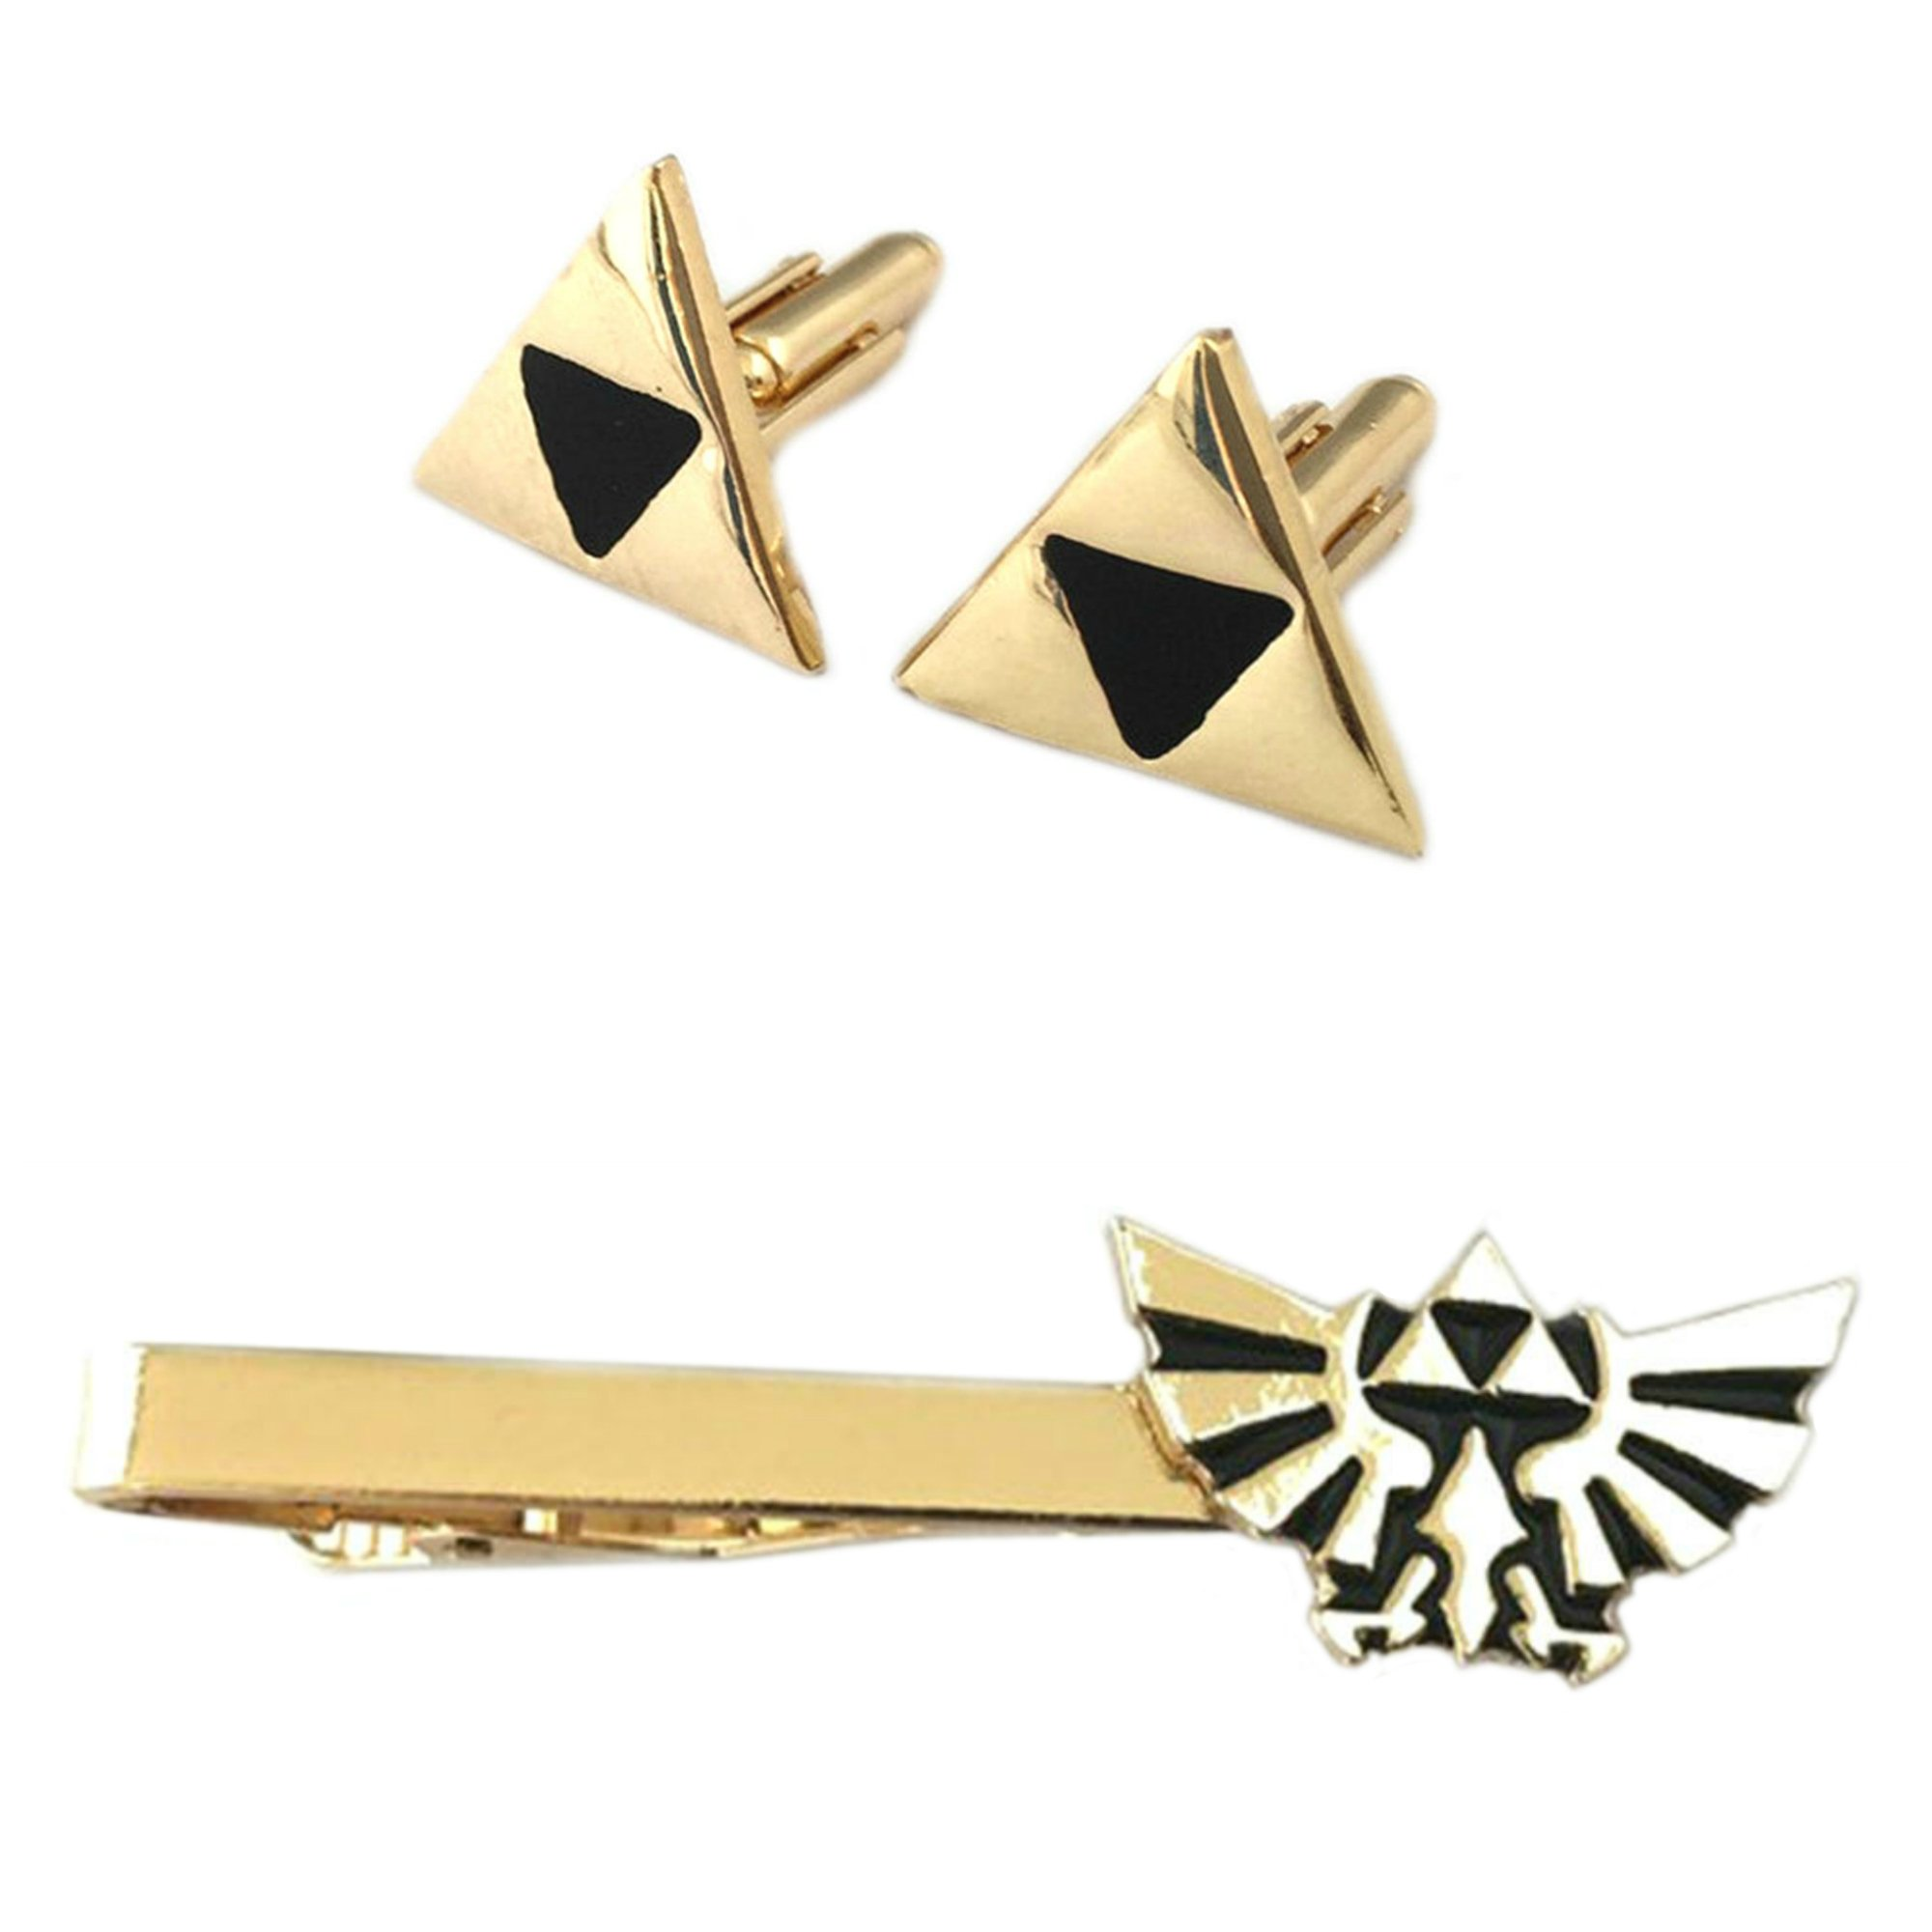 Outlander Legend of Zelda Triforce Cufflink & Hyrule Tiebar - New 2018 Superhero Games - Set of 2 Wedding Logo w/Gift Box